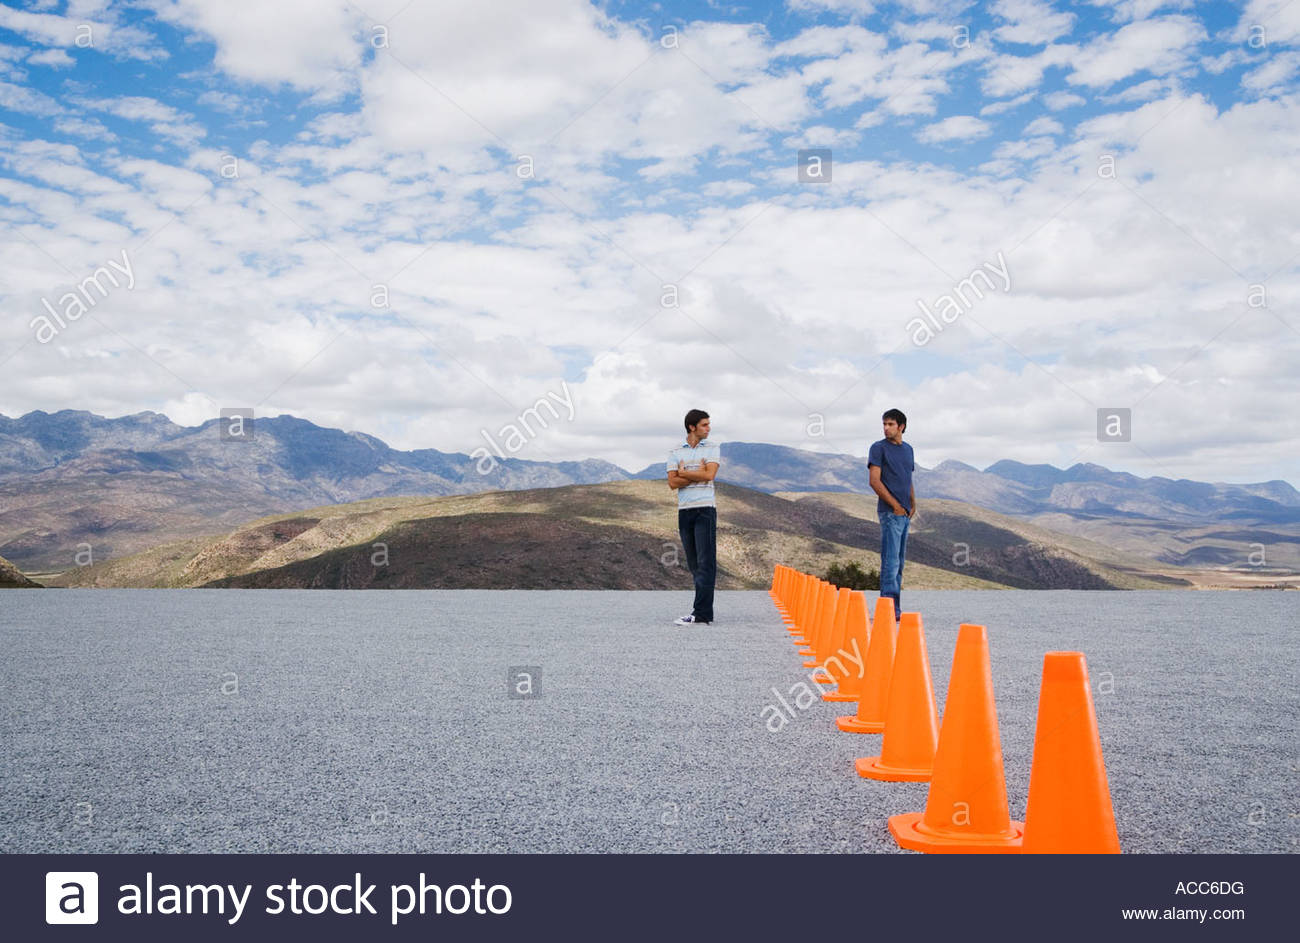 Two men divided by a row of safety cones - Stock Image